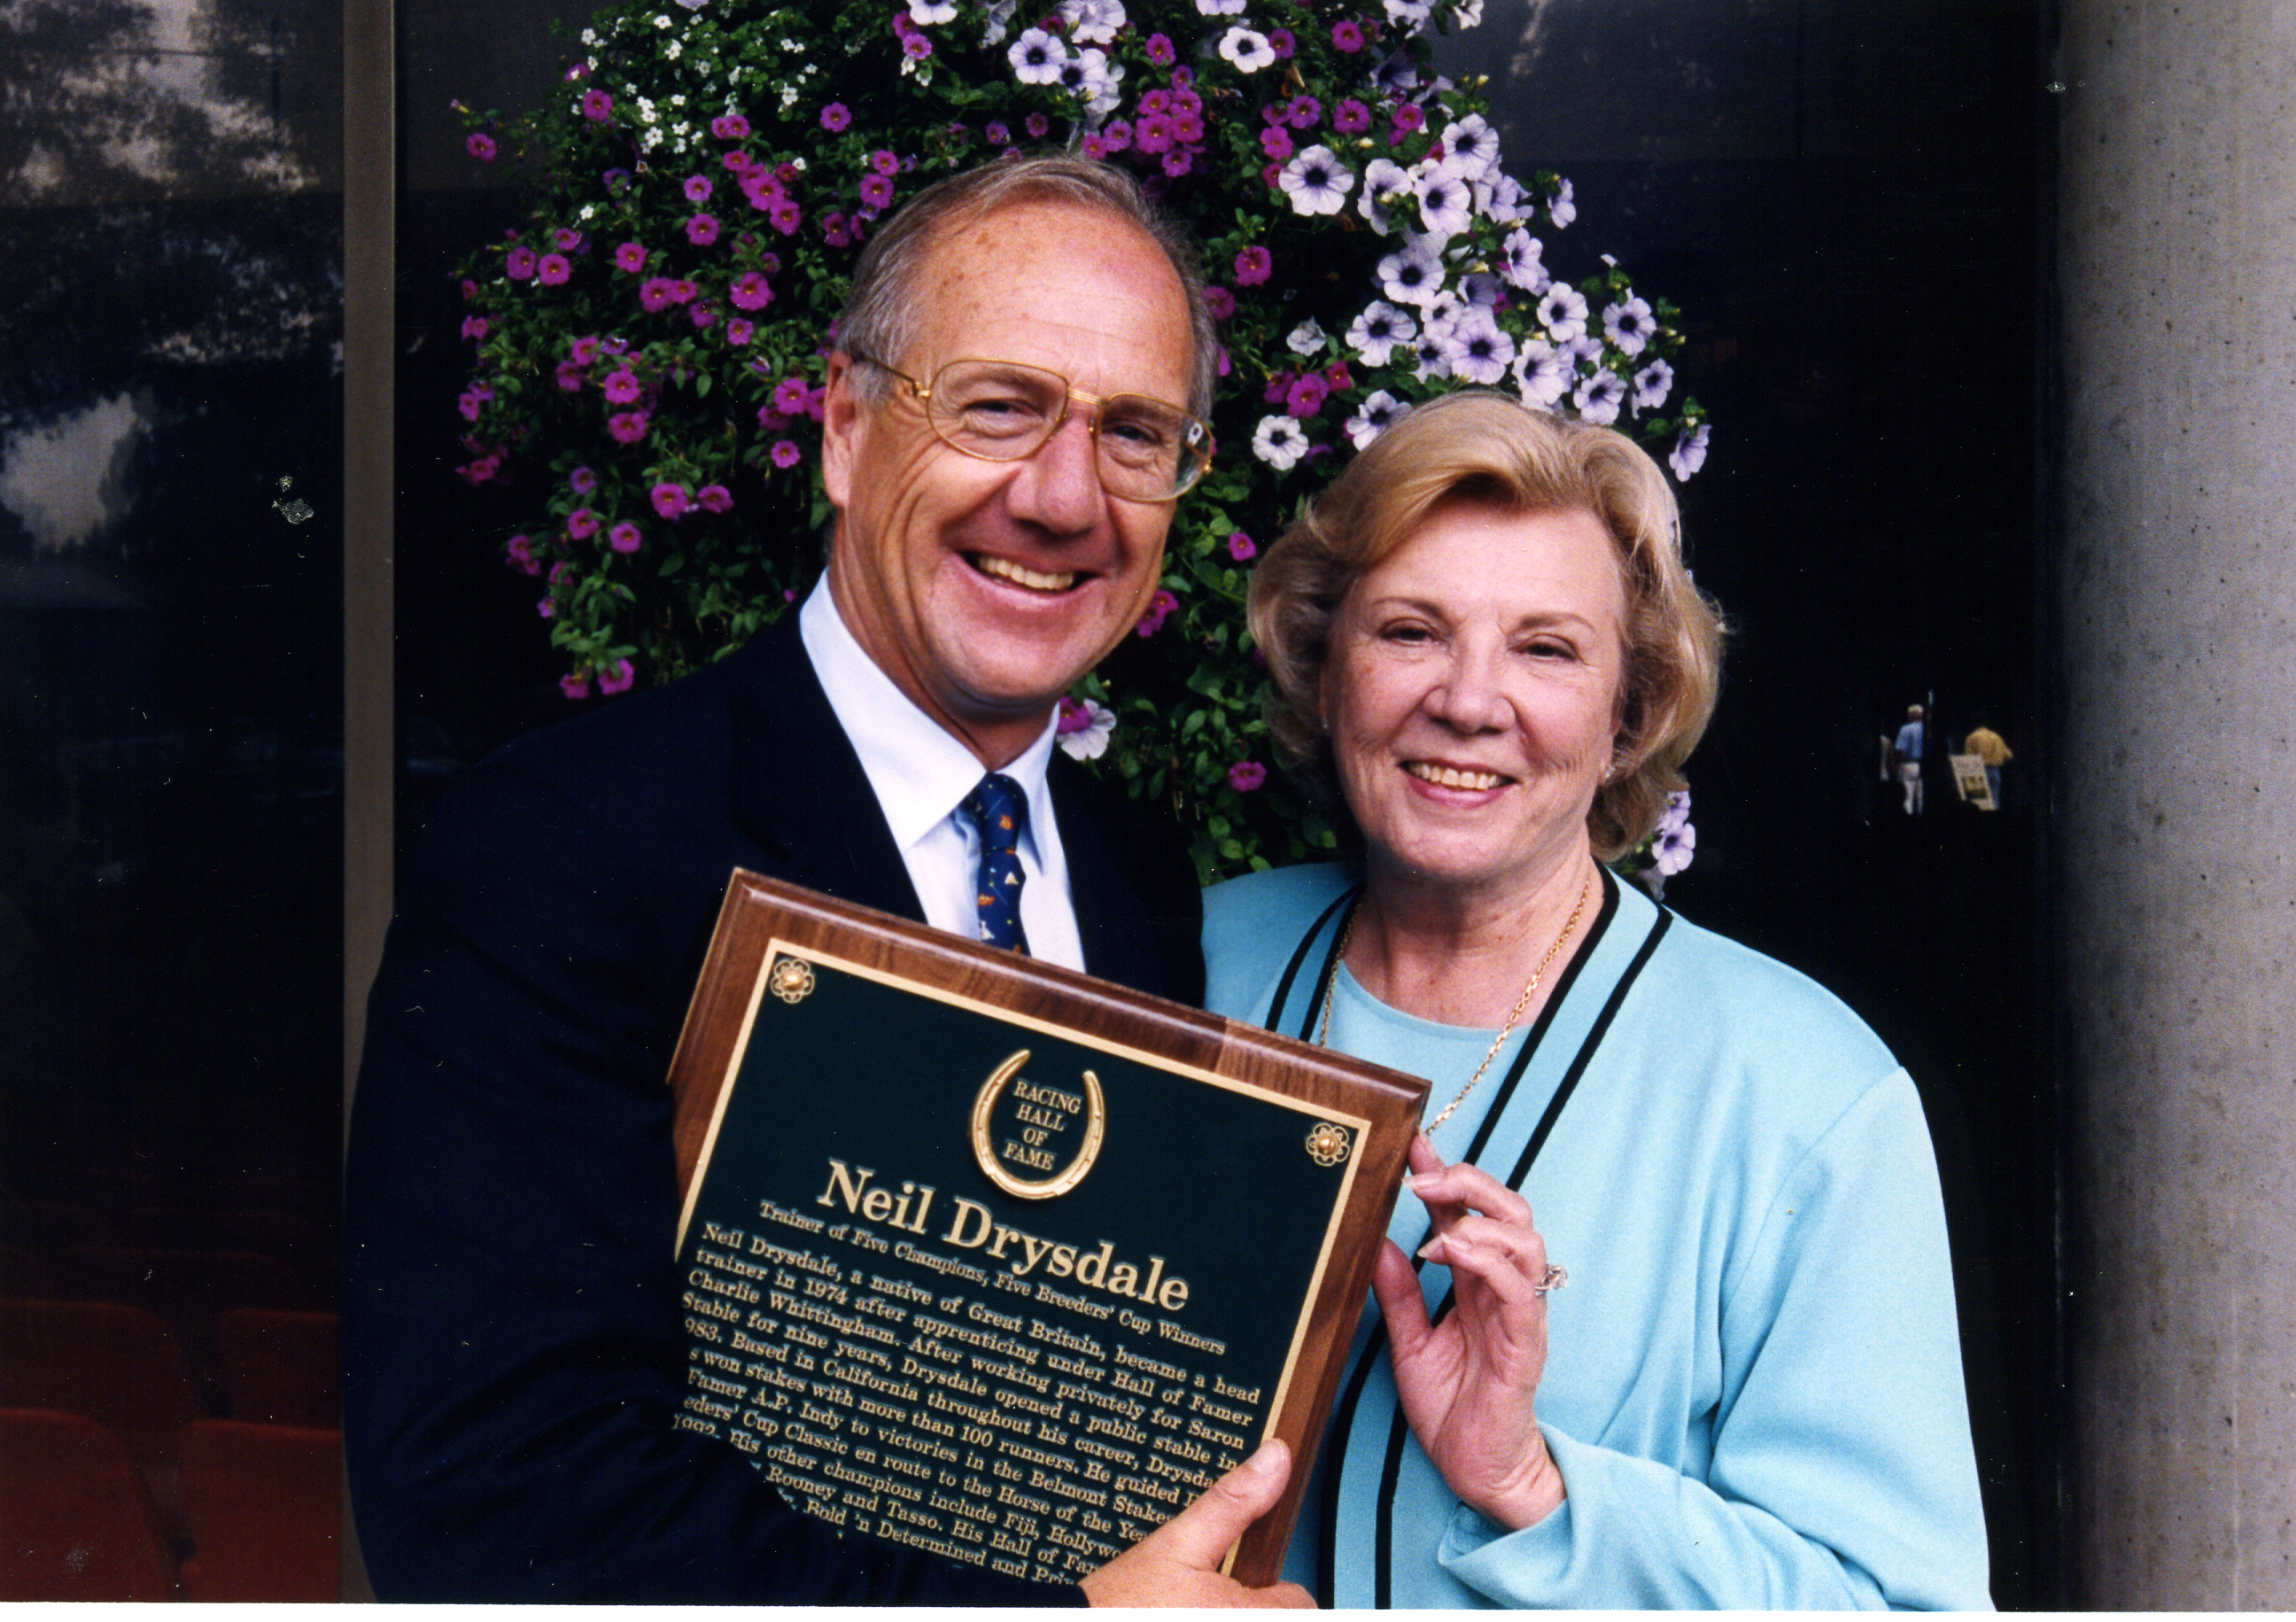 Neil Drysdale and Peggy Whittingham at his Hall of Fame induction in 2000 (Museum Collection)